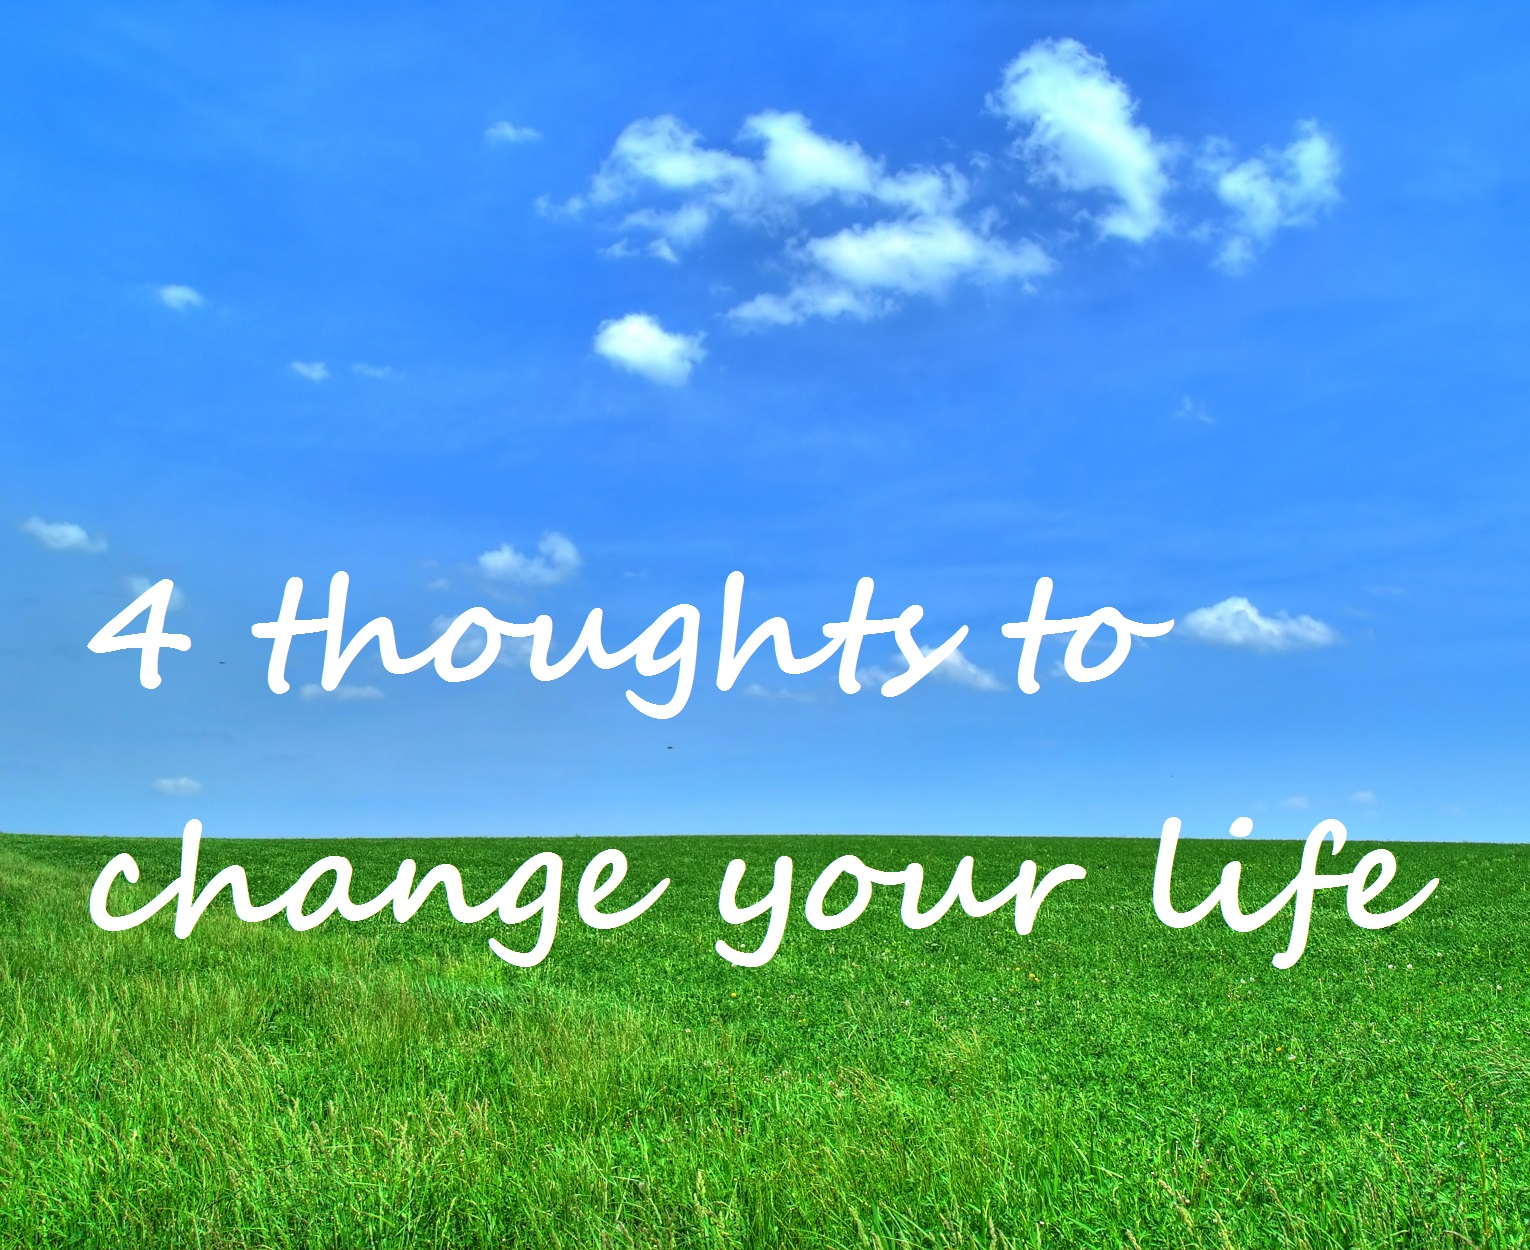 Four thoughts that will change your life